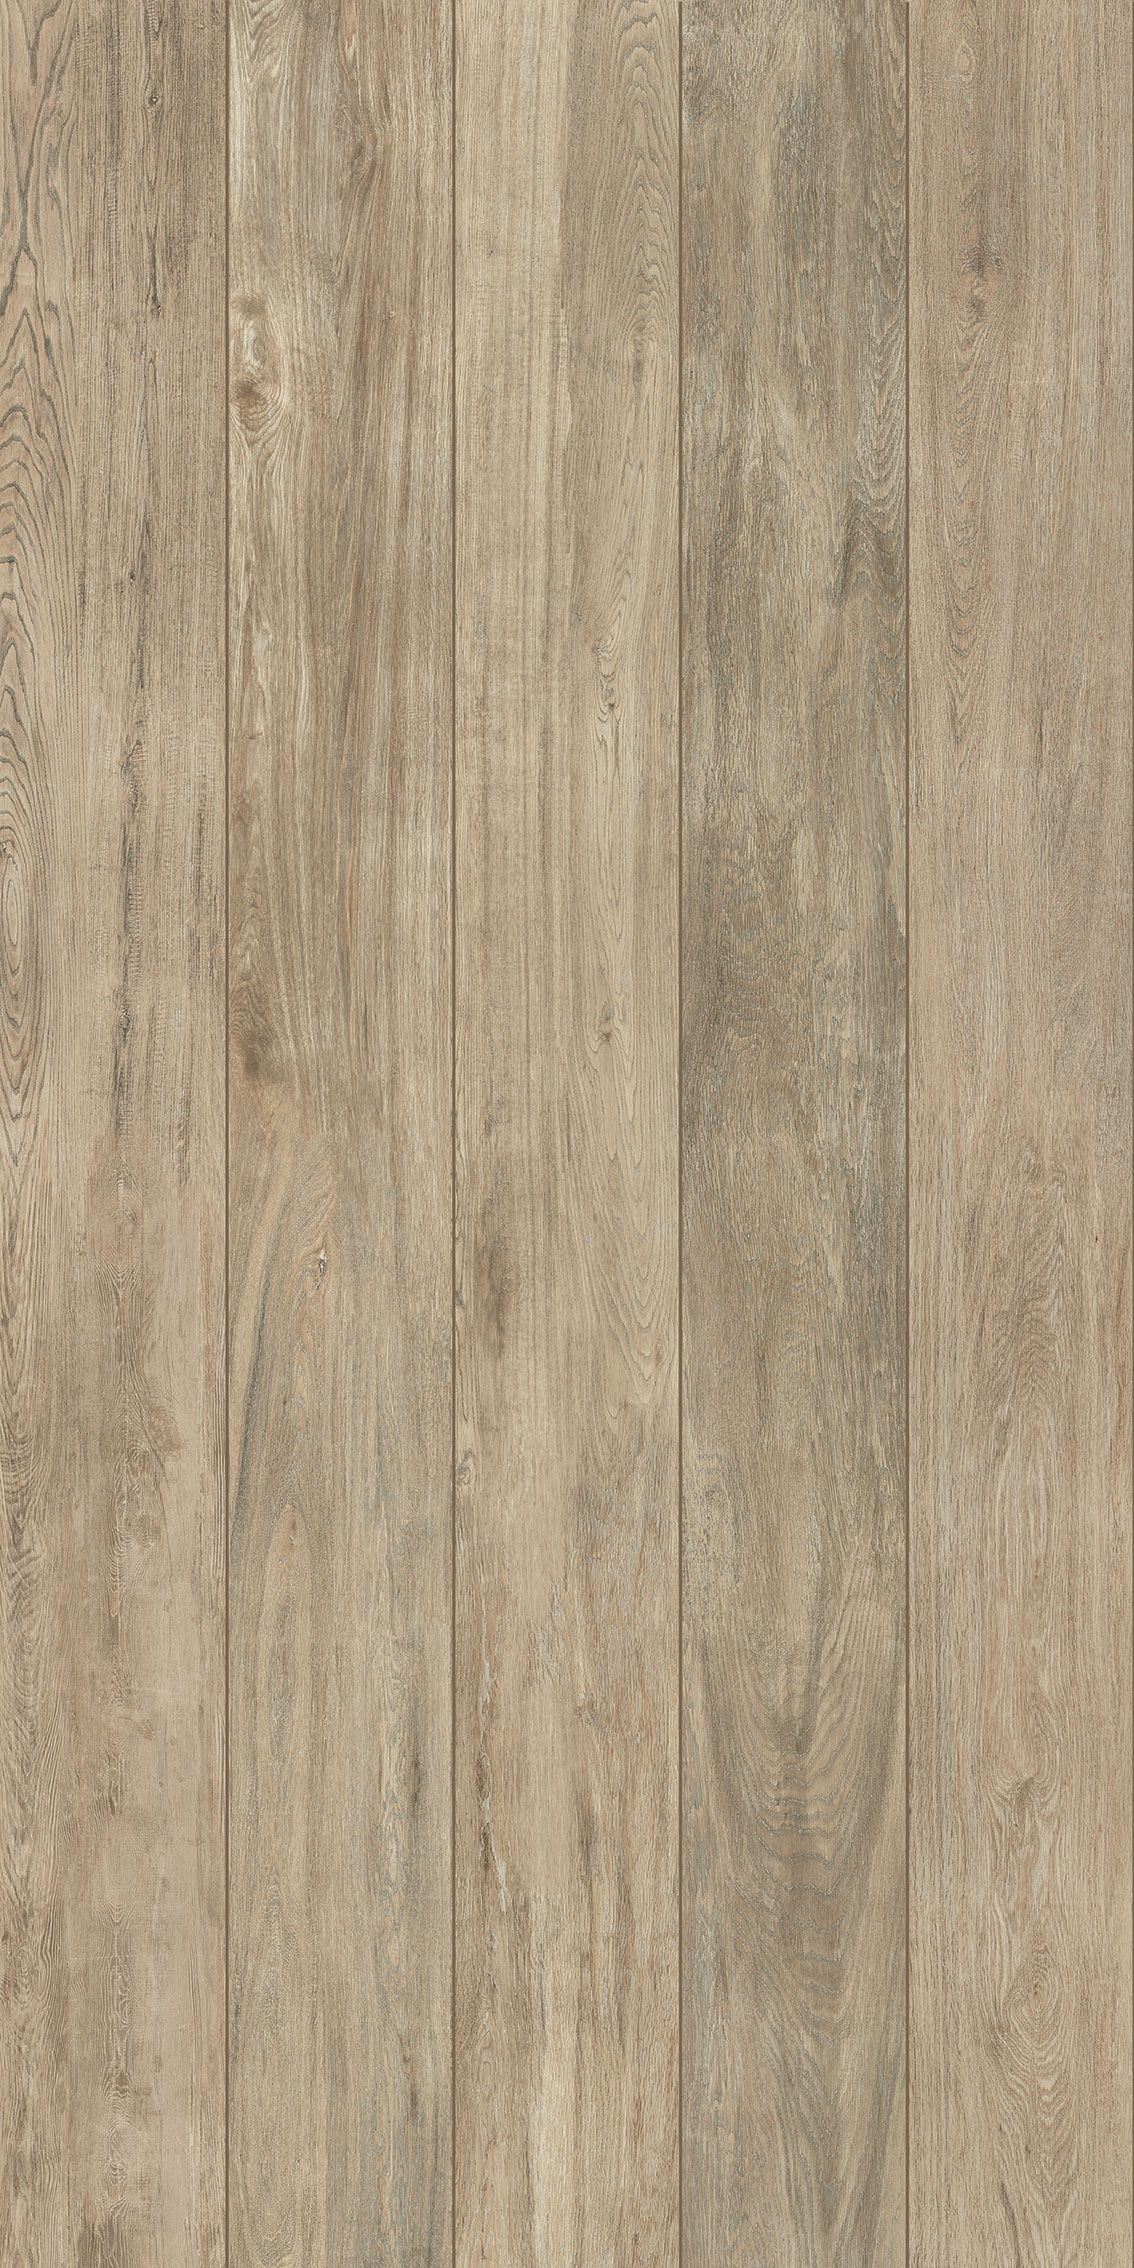 Wood panel texture Materials Pinterest Wood panel